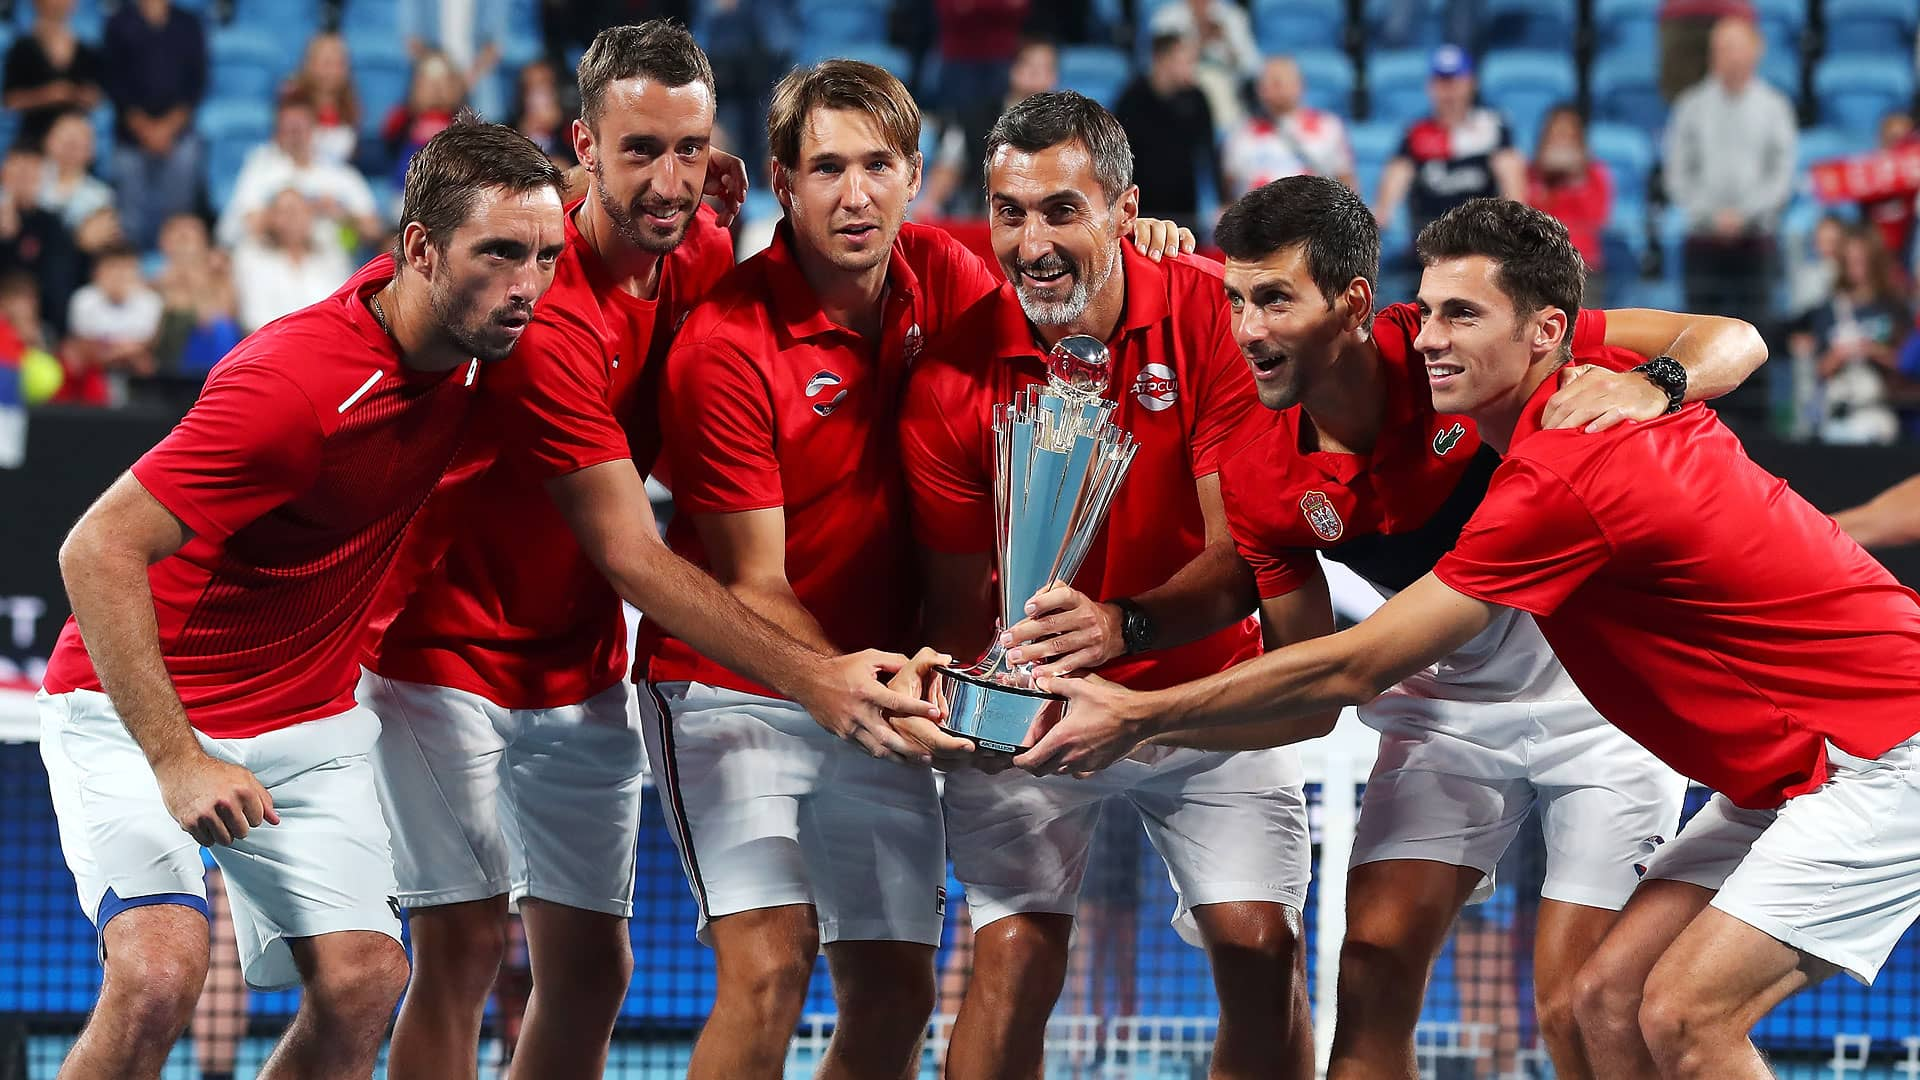 Team Serbia wins the inaugural ATP Cup in Sydney